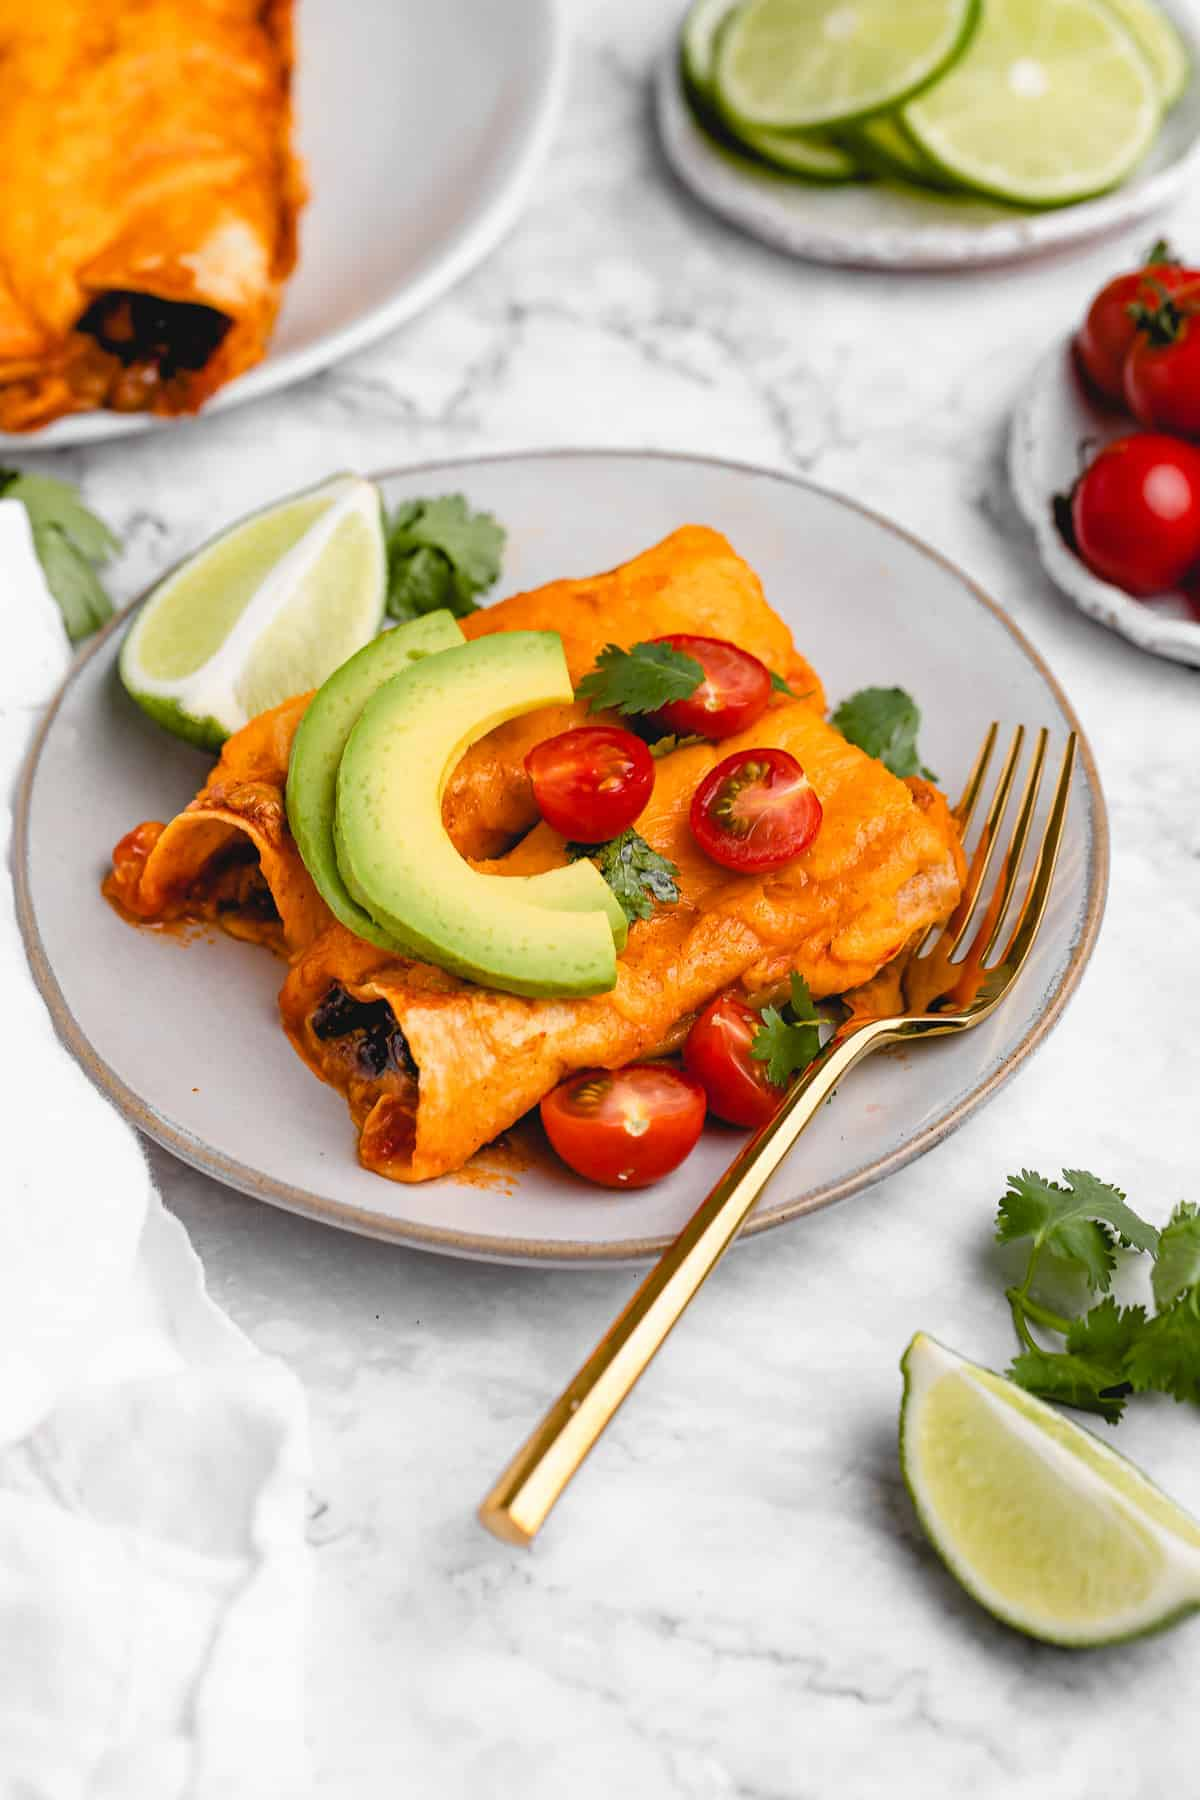 Plate of cheesy enchiladas with a wedge of lime.